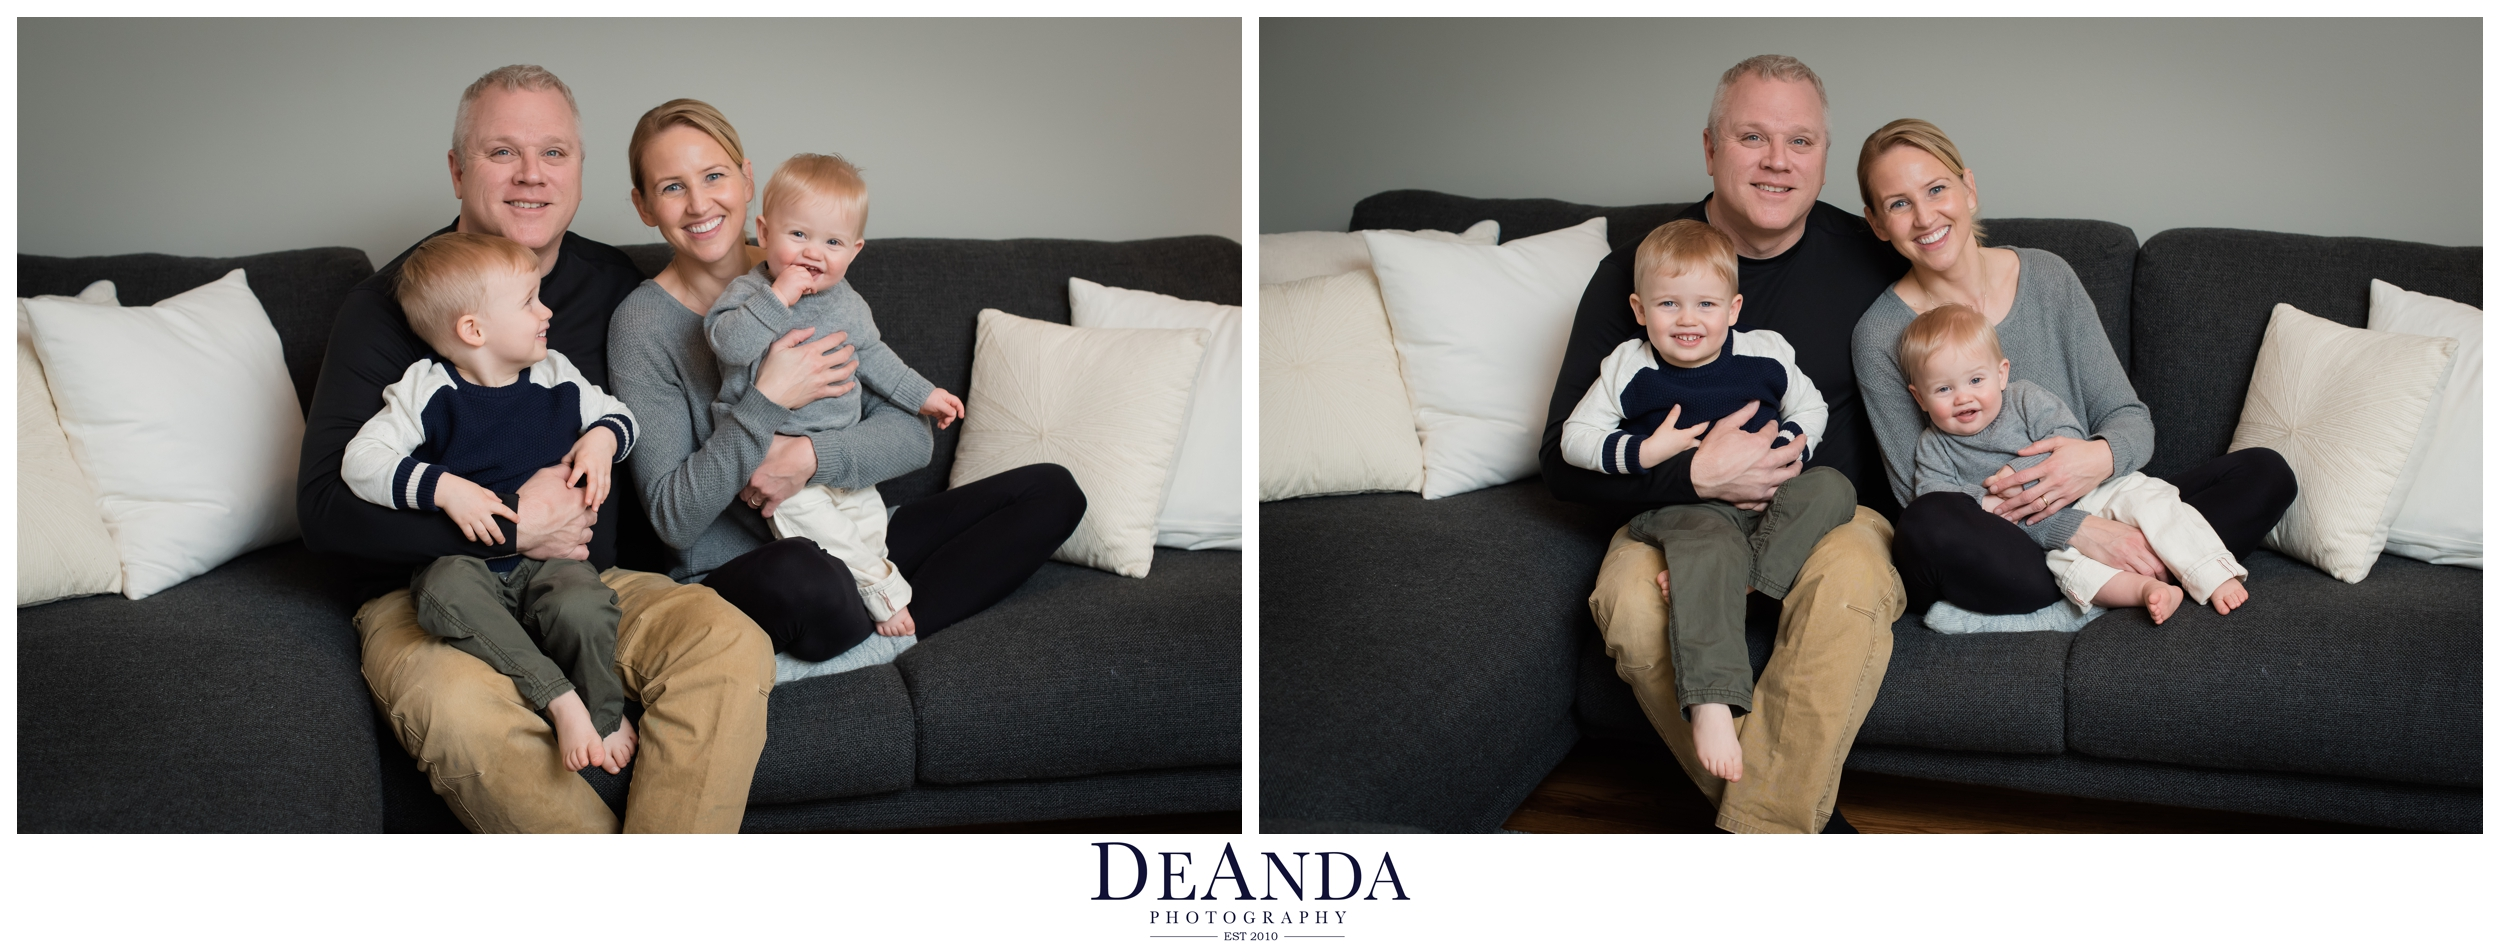 1 year old lifestyle portraits in home with family